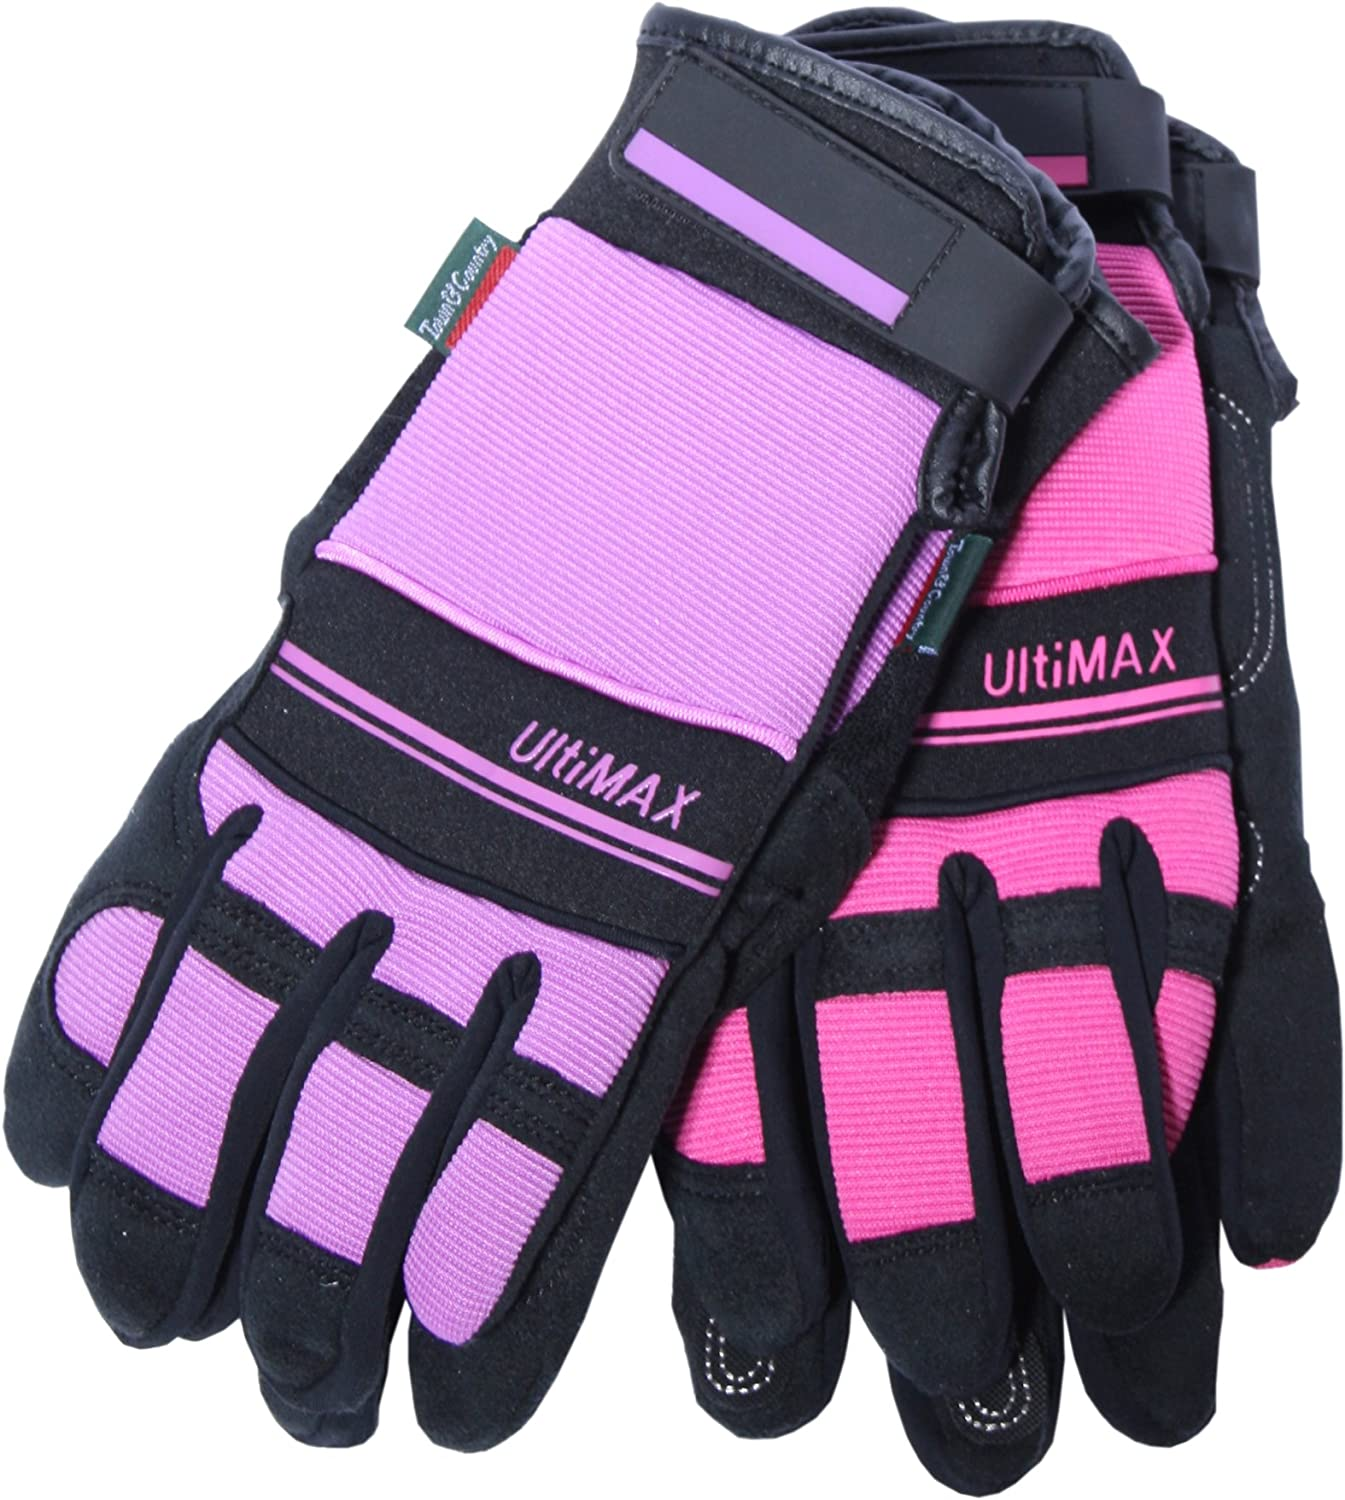 Town /& Country TGL435M Deluxe Ultimax Mens Gloves Medium